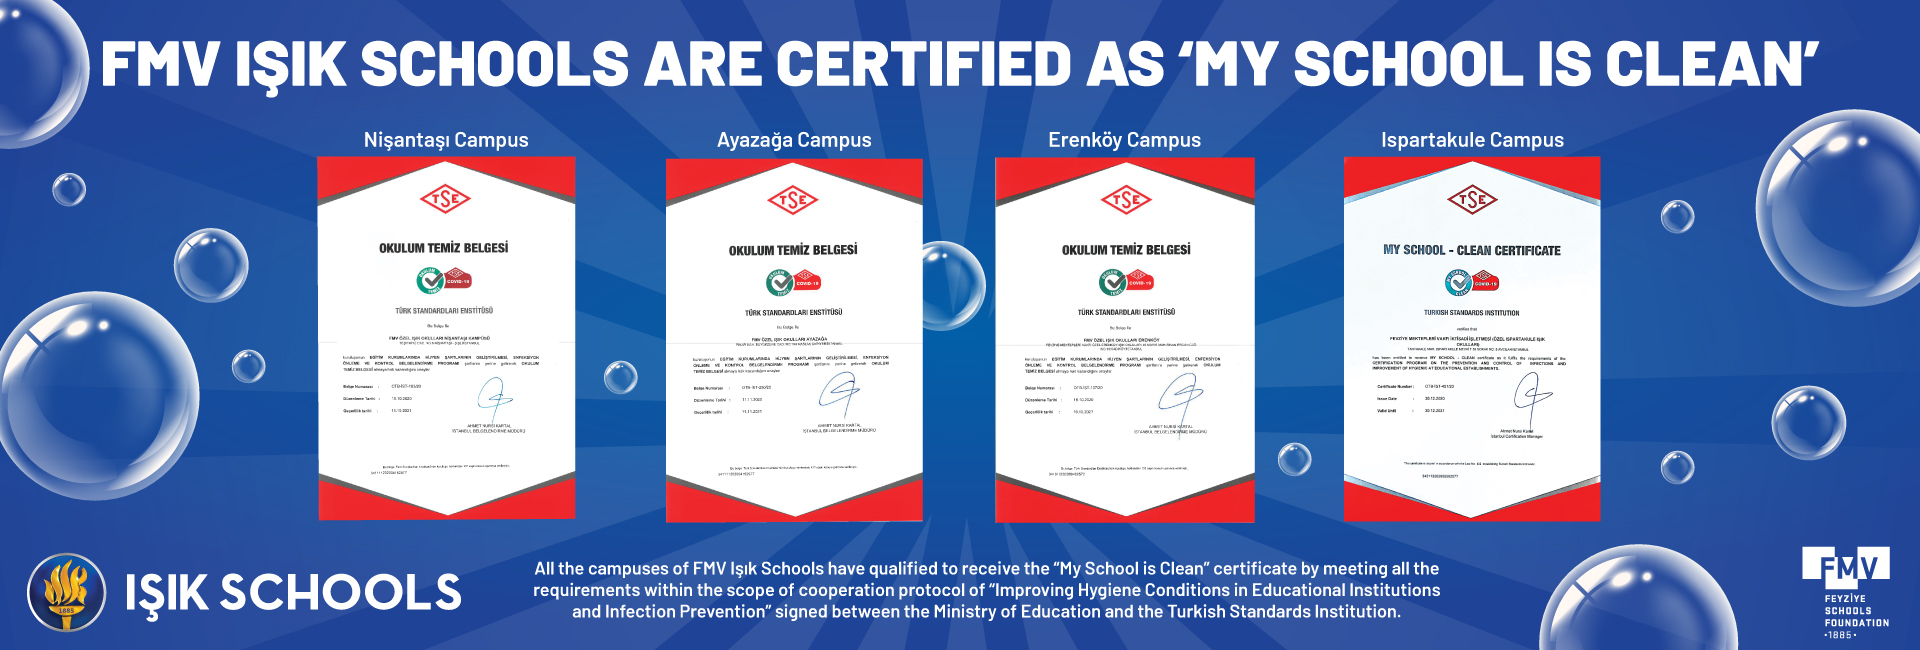 FMV IŞIK SCHOOLS ARE CERTIFIED AS 'MY SCHOOL IS CLEAN